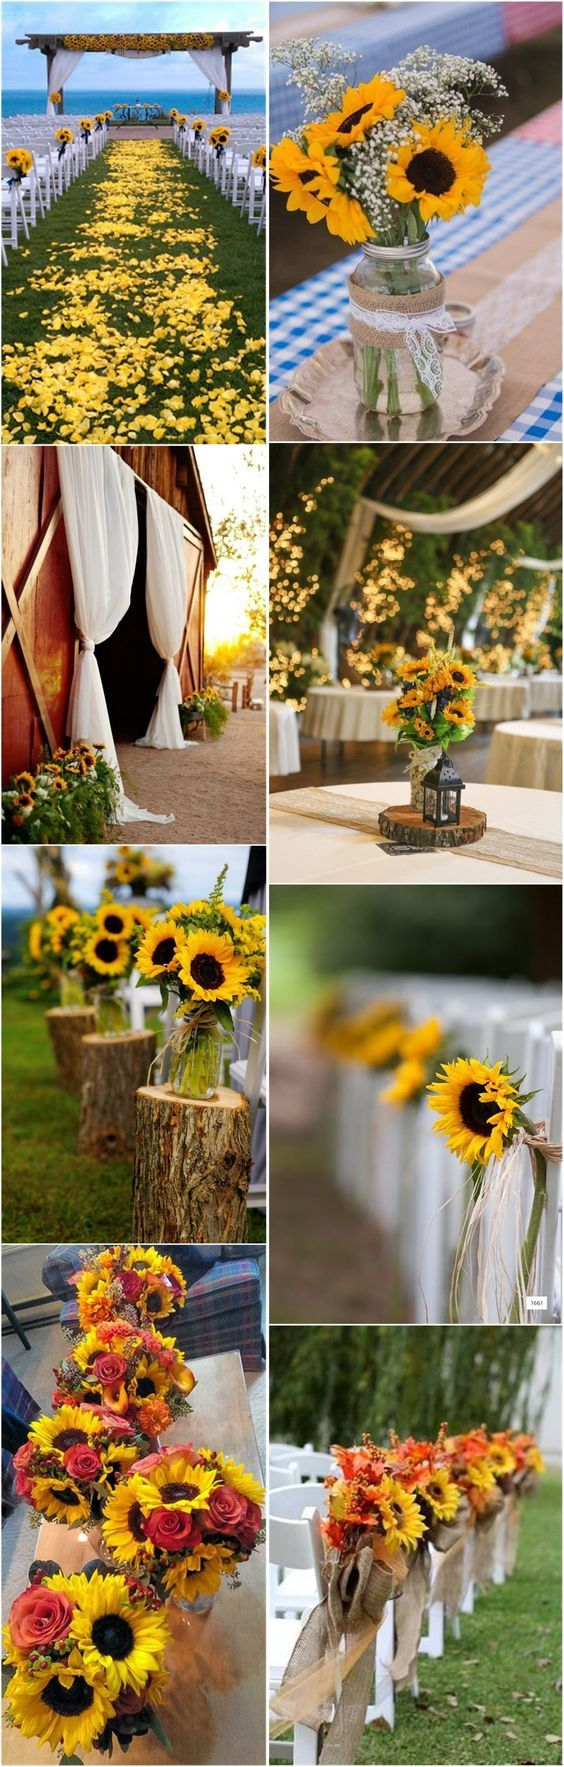 23 bright sunflower wedding decoration ideas for your rustic wedding rustic weddings 23 bright sunflower wedding decoration ideas for your rustic wedding junglespirit Image collections